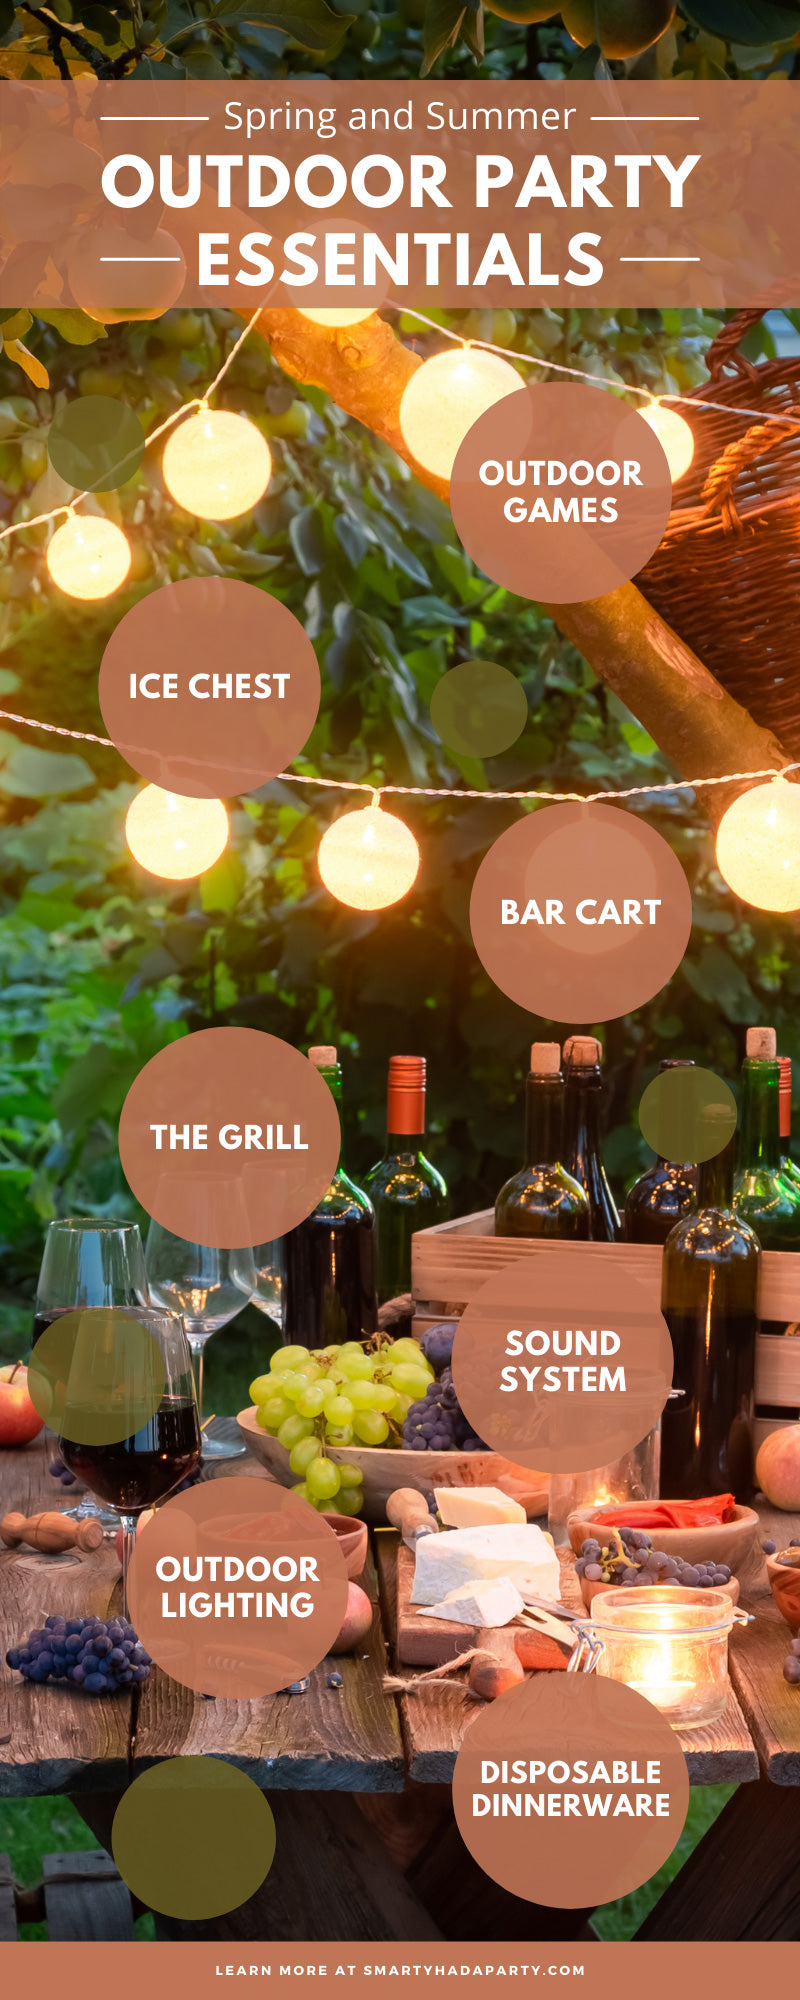 Spring and Summer Outdoor Party Essentials